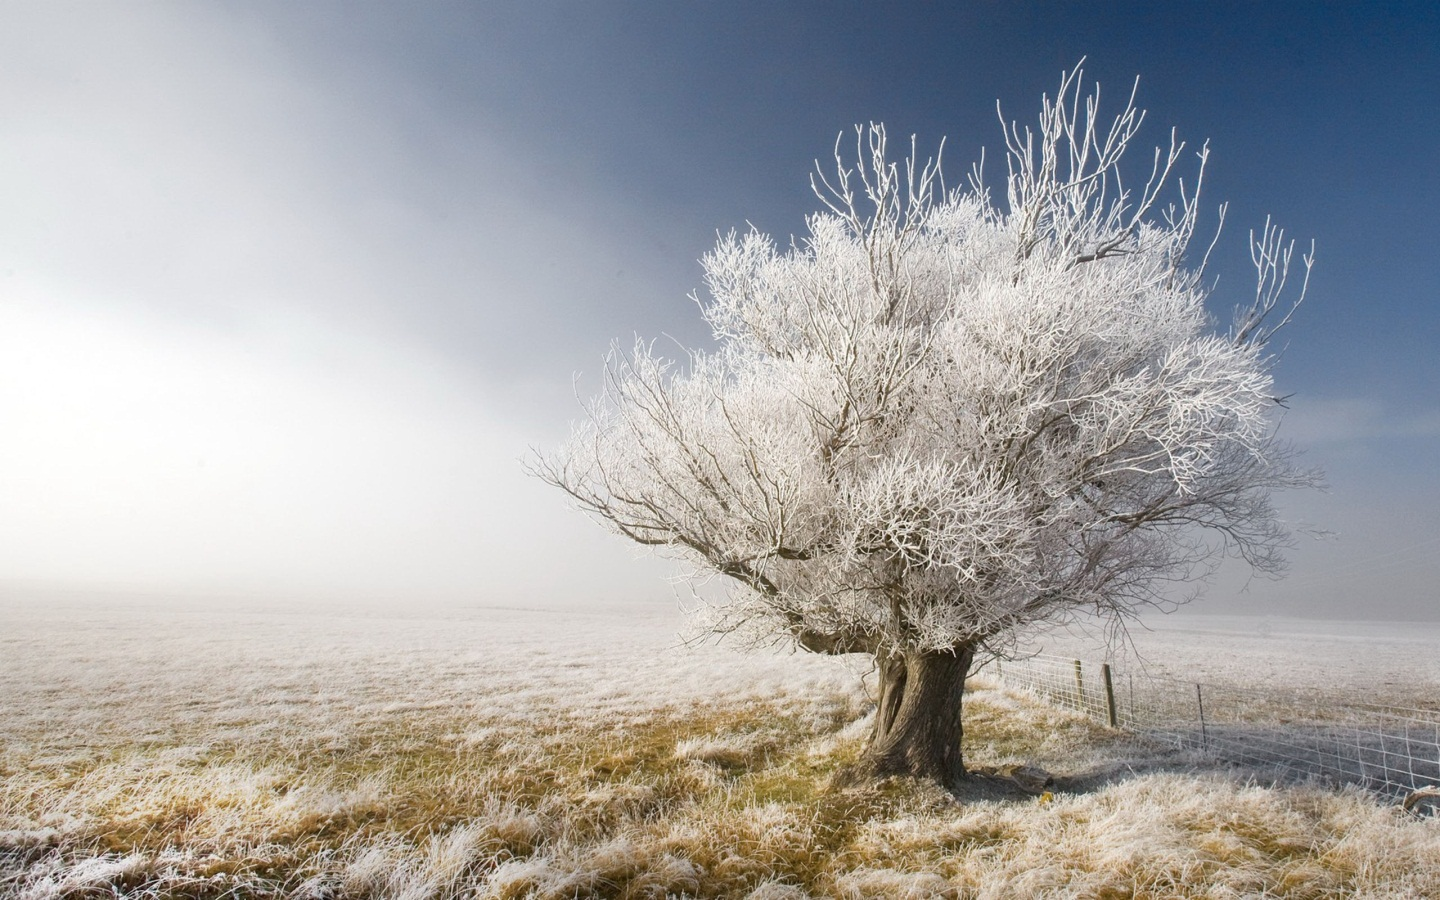 winter wallpaper free download saying pictures